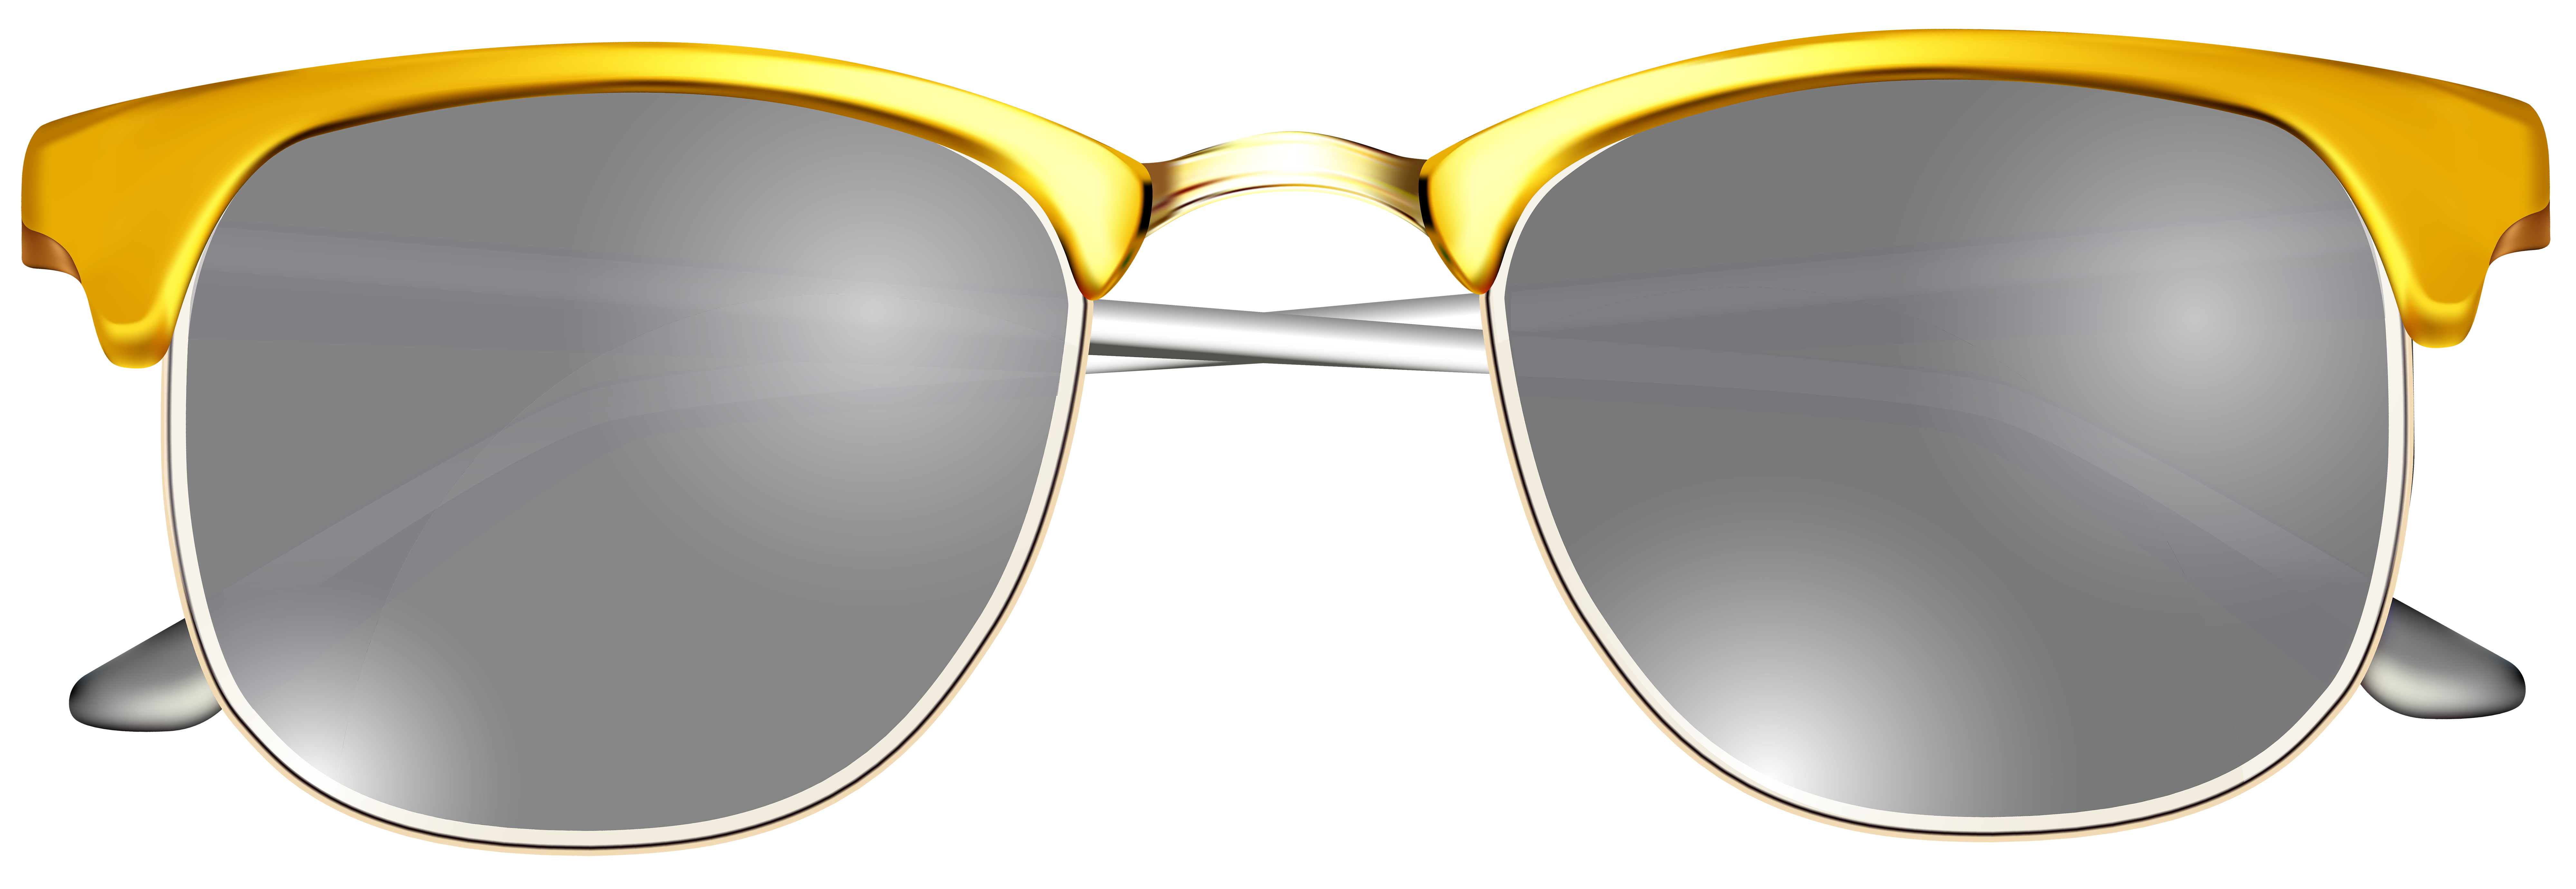 Free sun glasses clipart clip royalty free Sunglasses Transparent Clip Art Image | Gallery Yopriceville - High ... clip royalty free